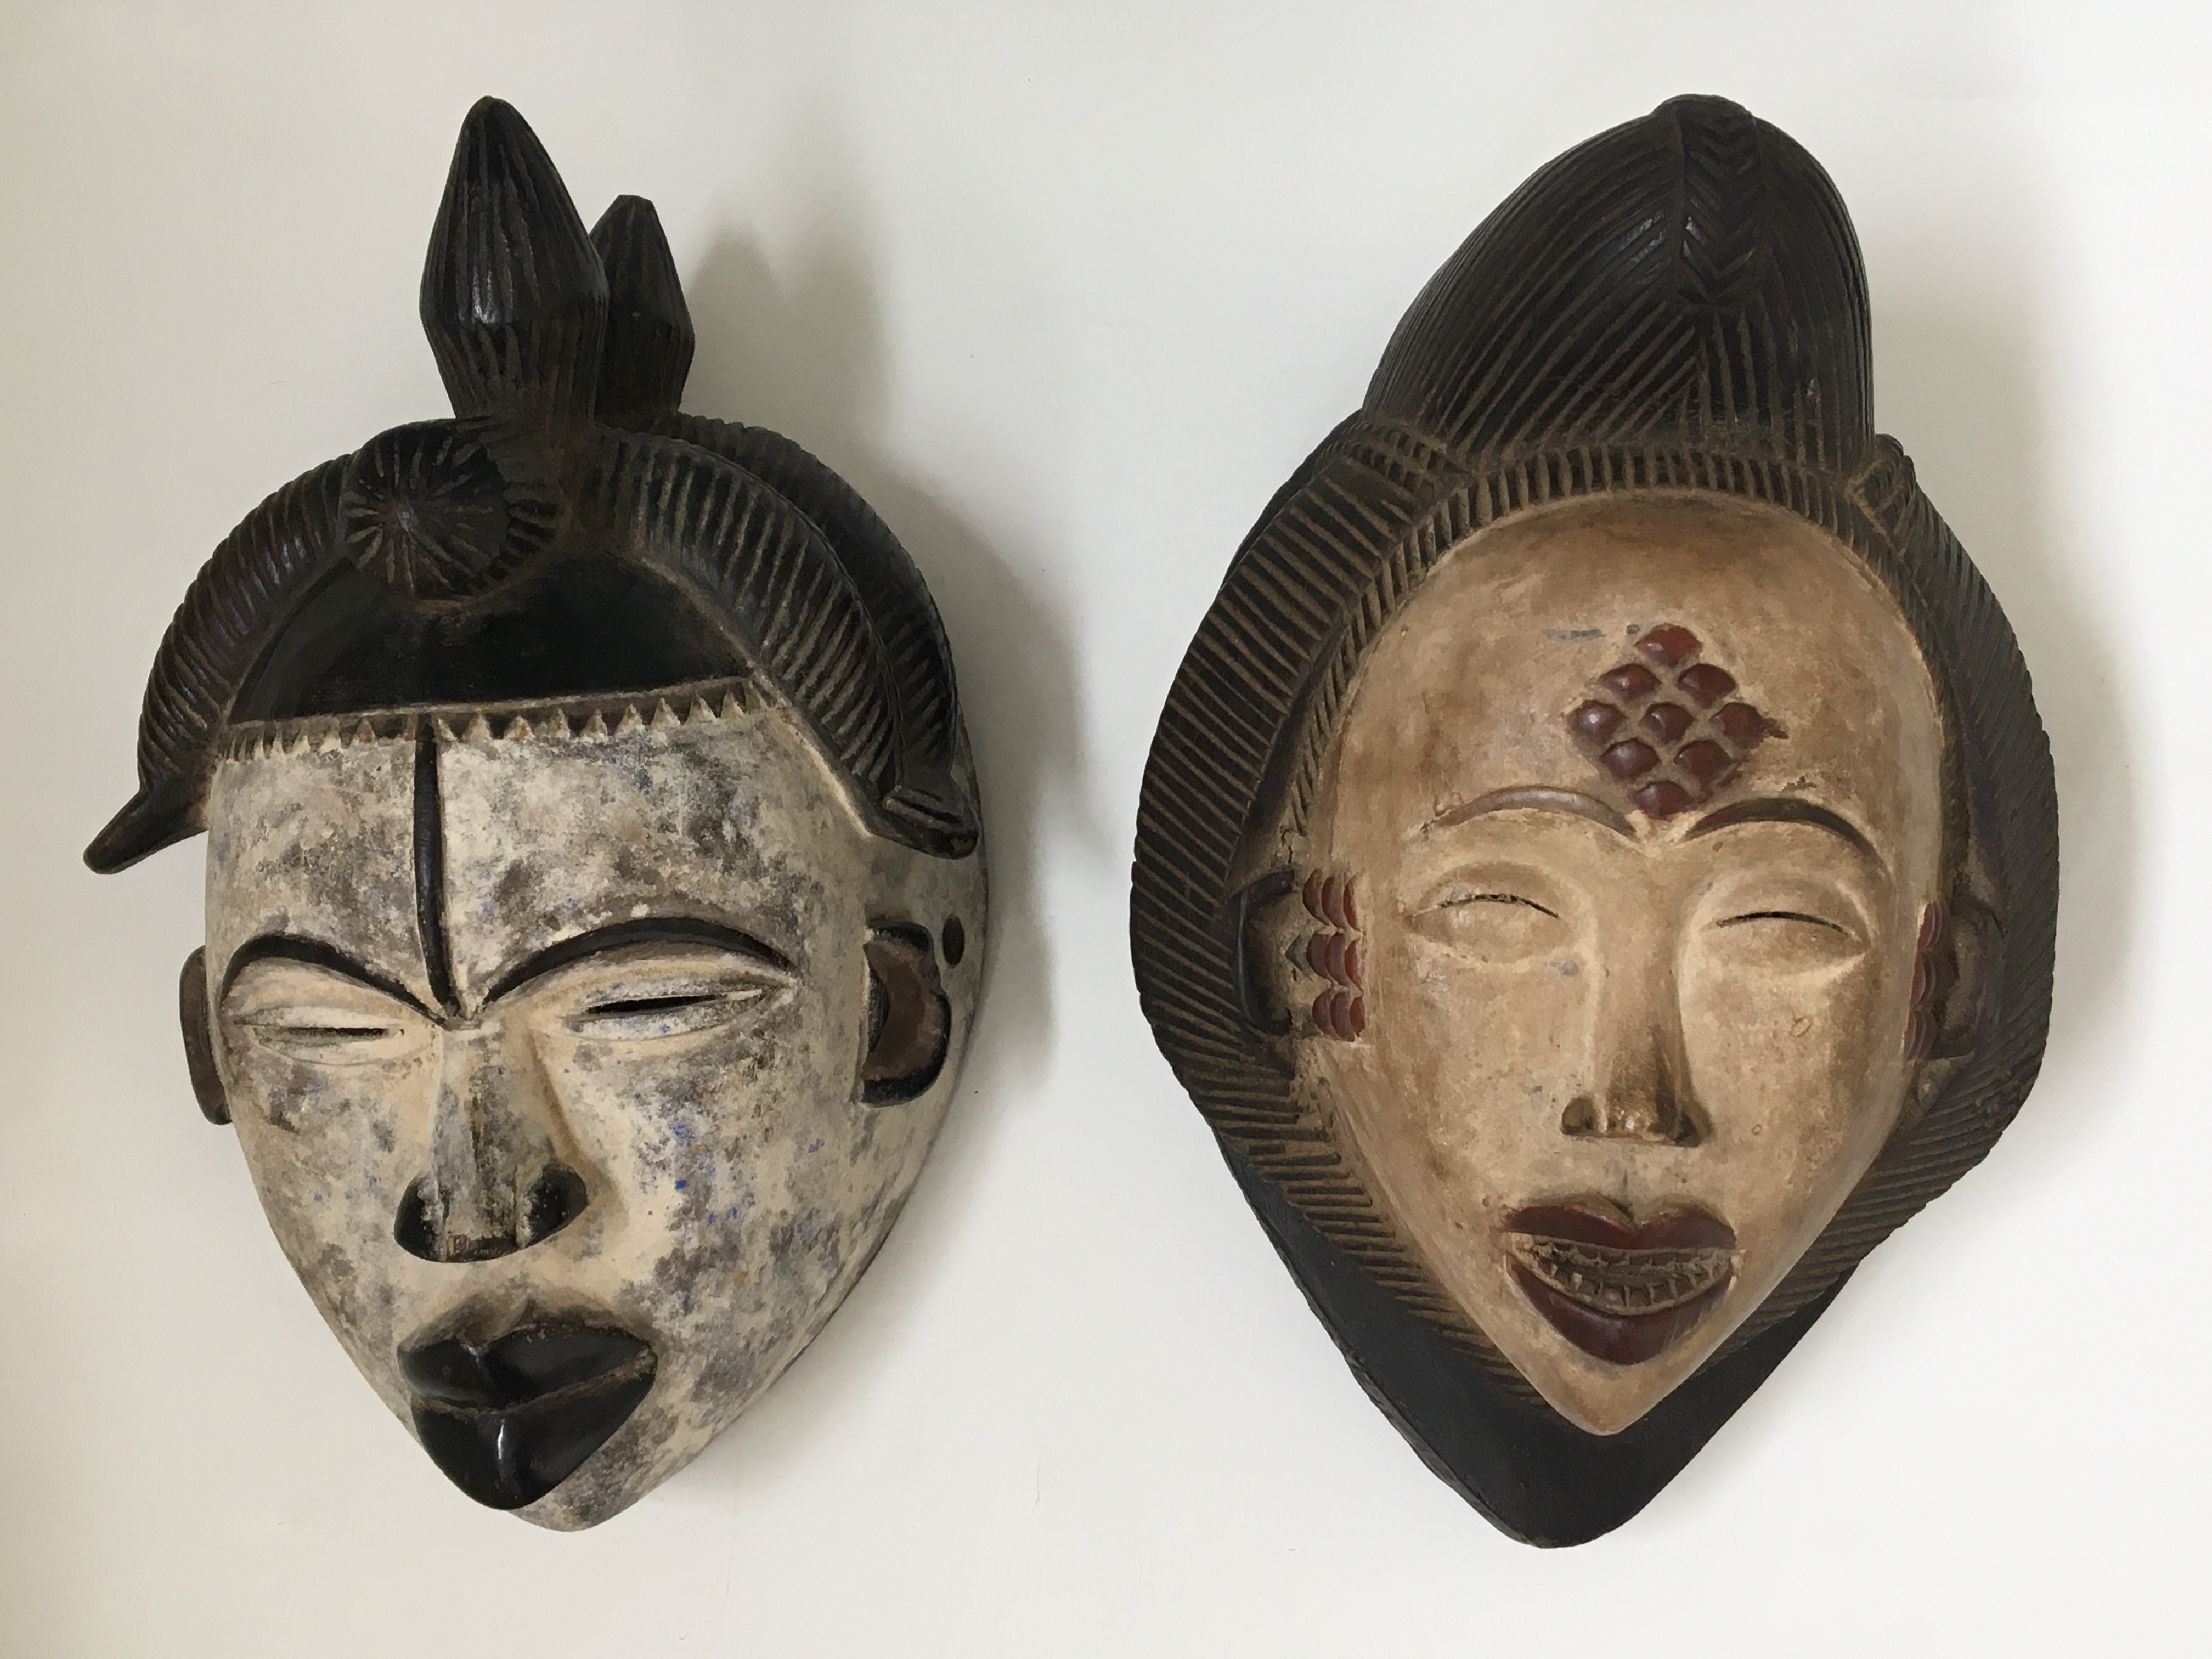 Two West African tribal face masks, with carved hair details. IMPORTANT: Online viewing and